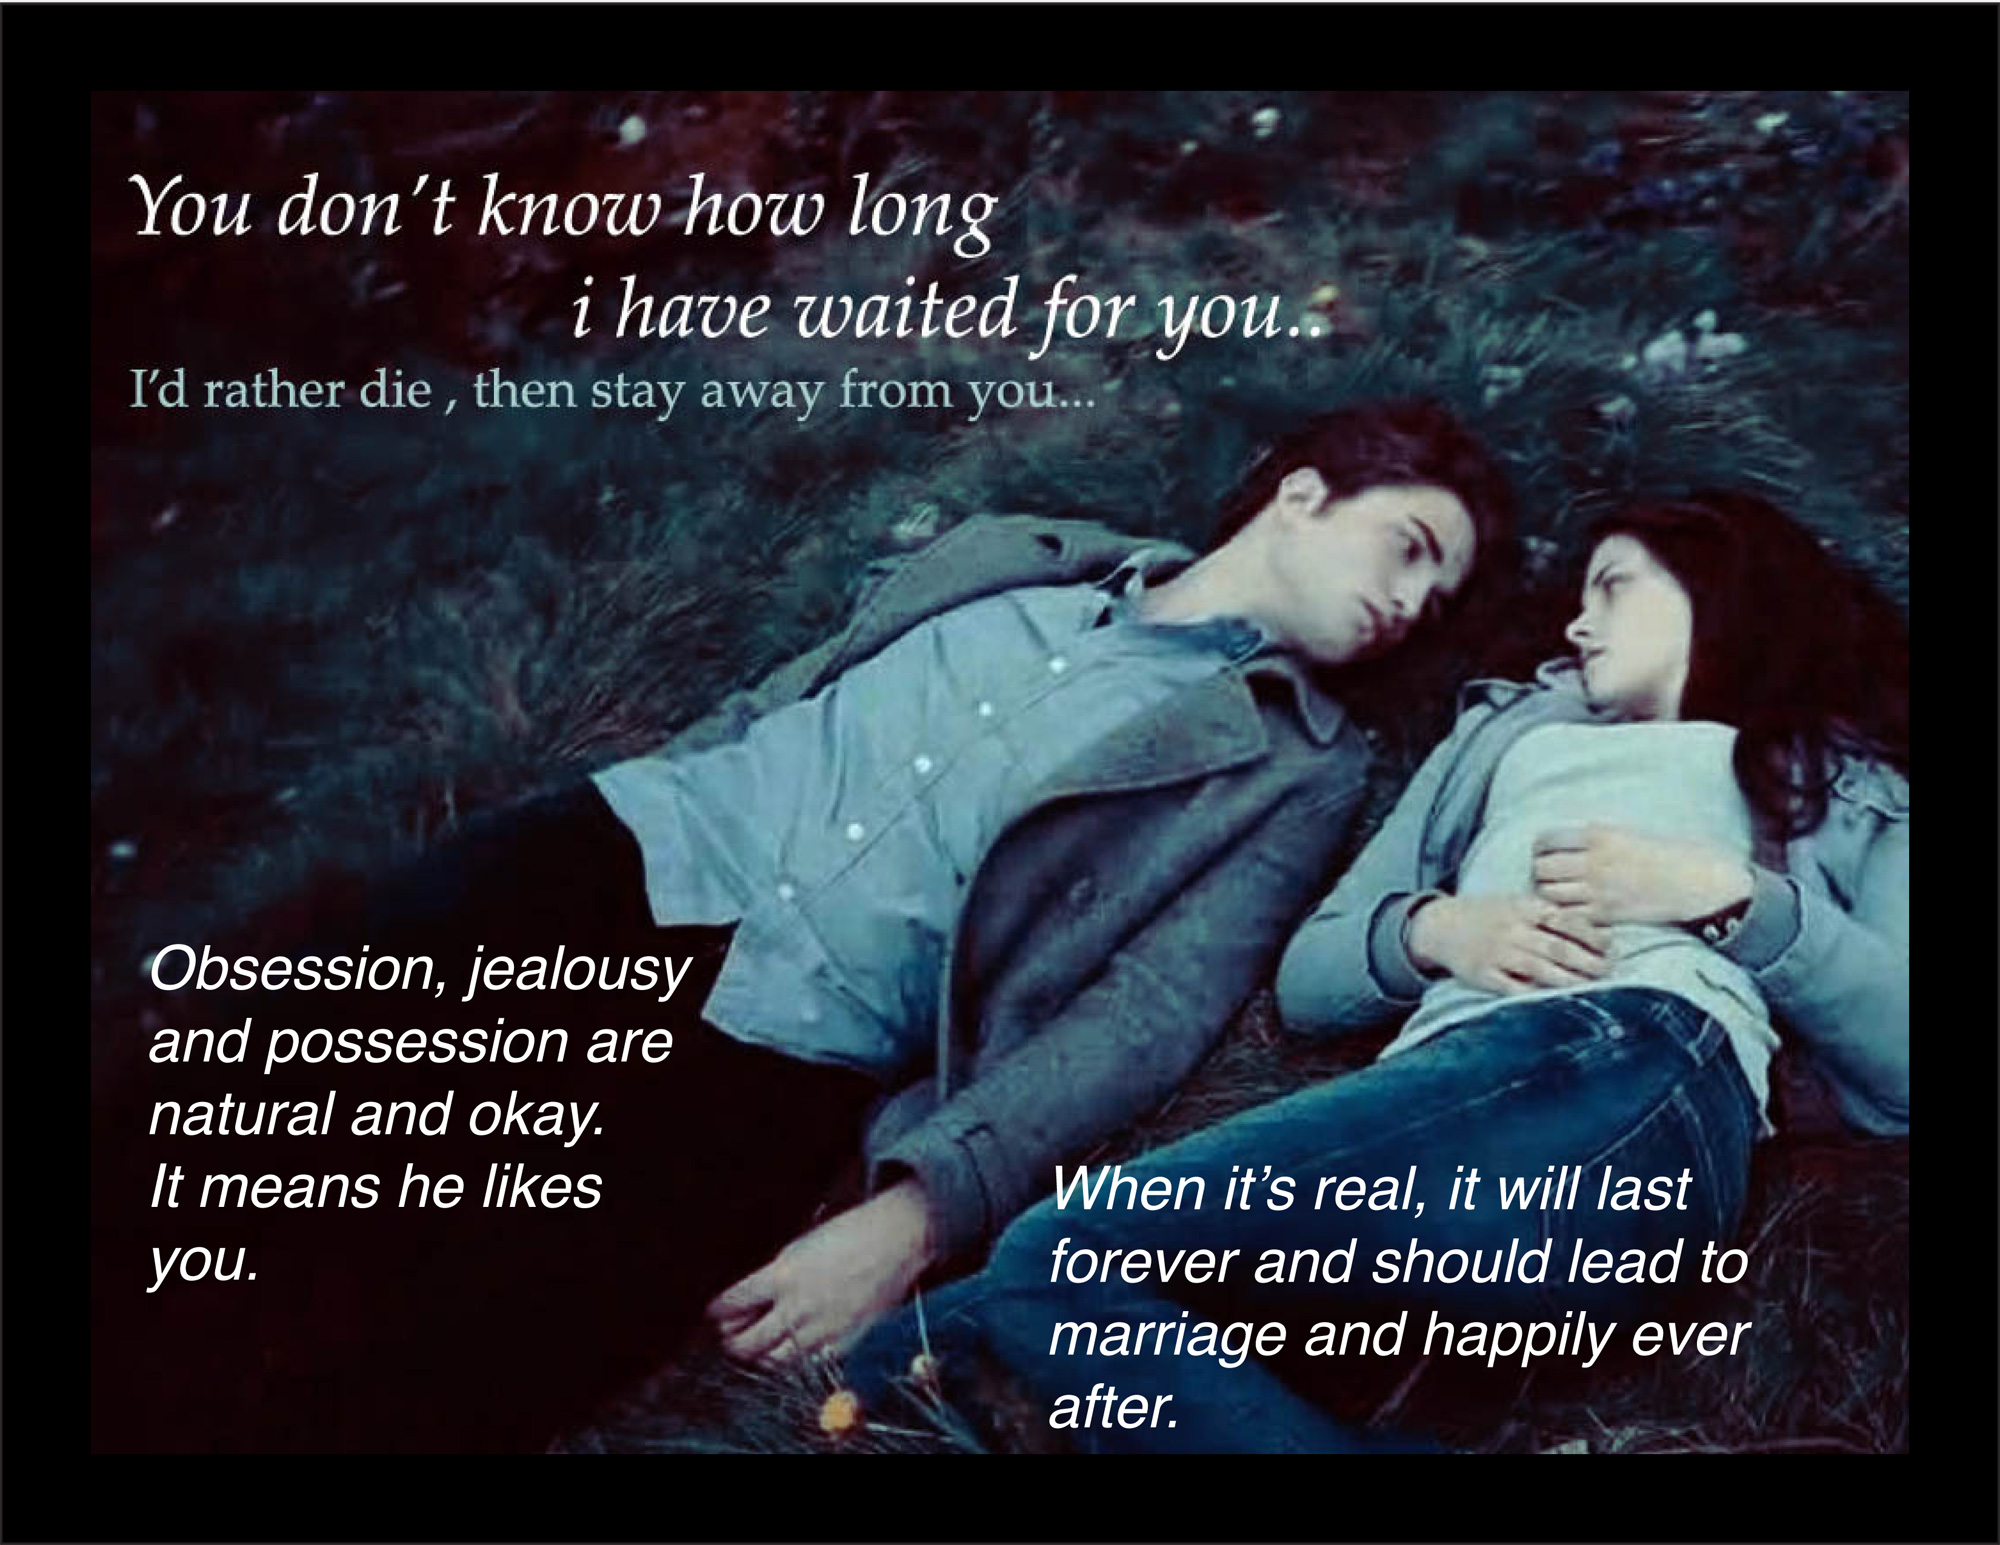 Image from Twilight with text reading 'Obsession, jealousy and possession are natural and okay - it means he likes you, If it's real, it will last forever and should lead to marriage and happily ever after'